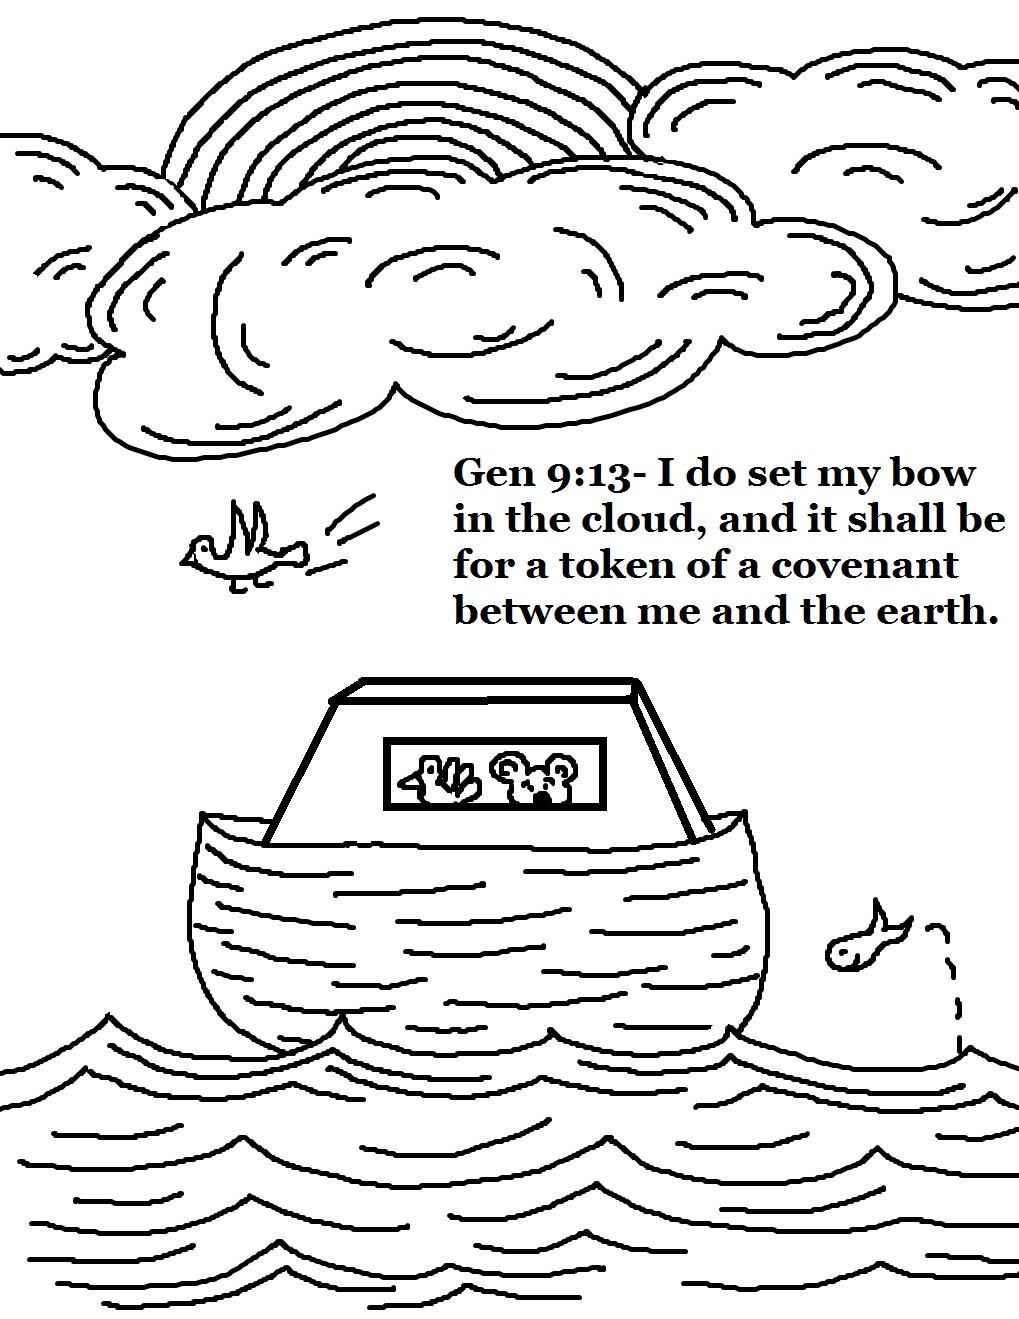 Noahs Ark Drawing at GetDrawings.com | Free for personal use ...